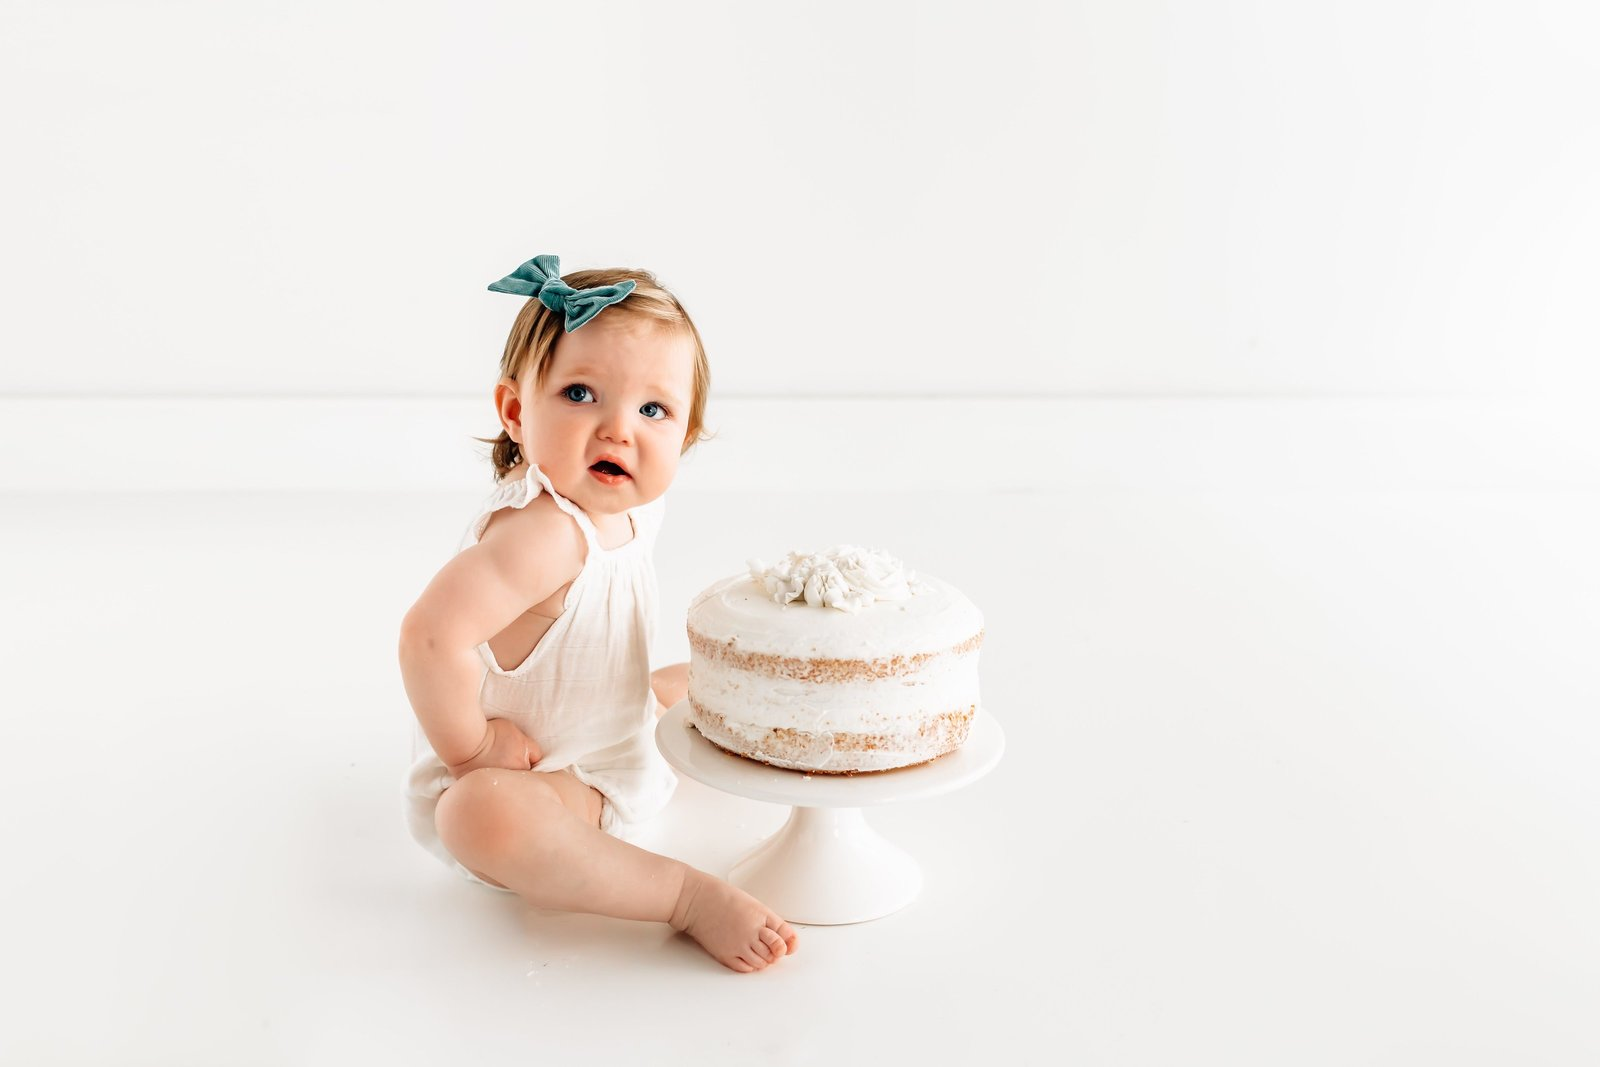 St_Louis_Baby_Photographer_Kelly_Laramore_Photography_101